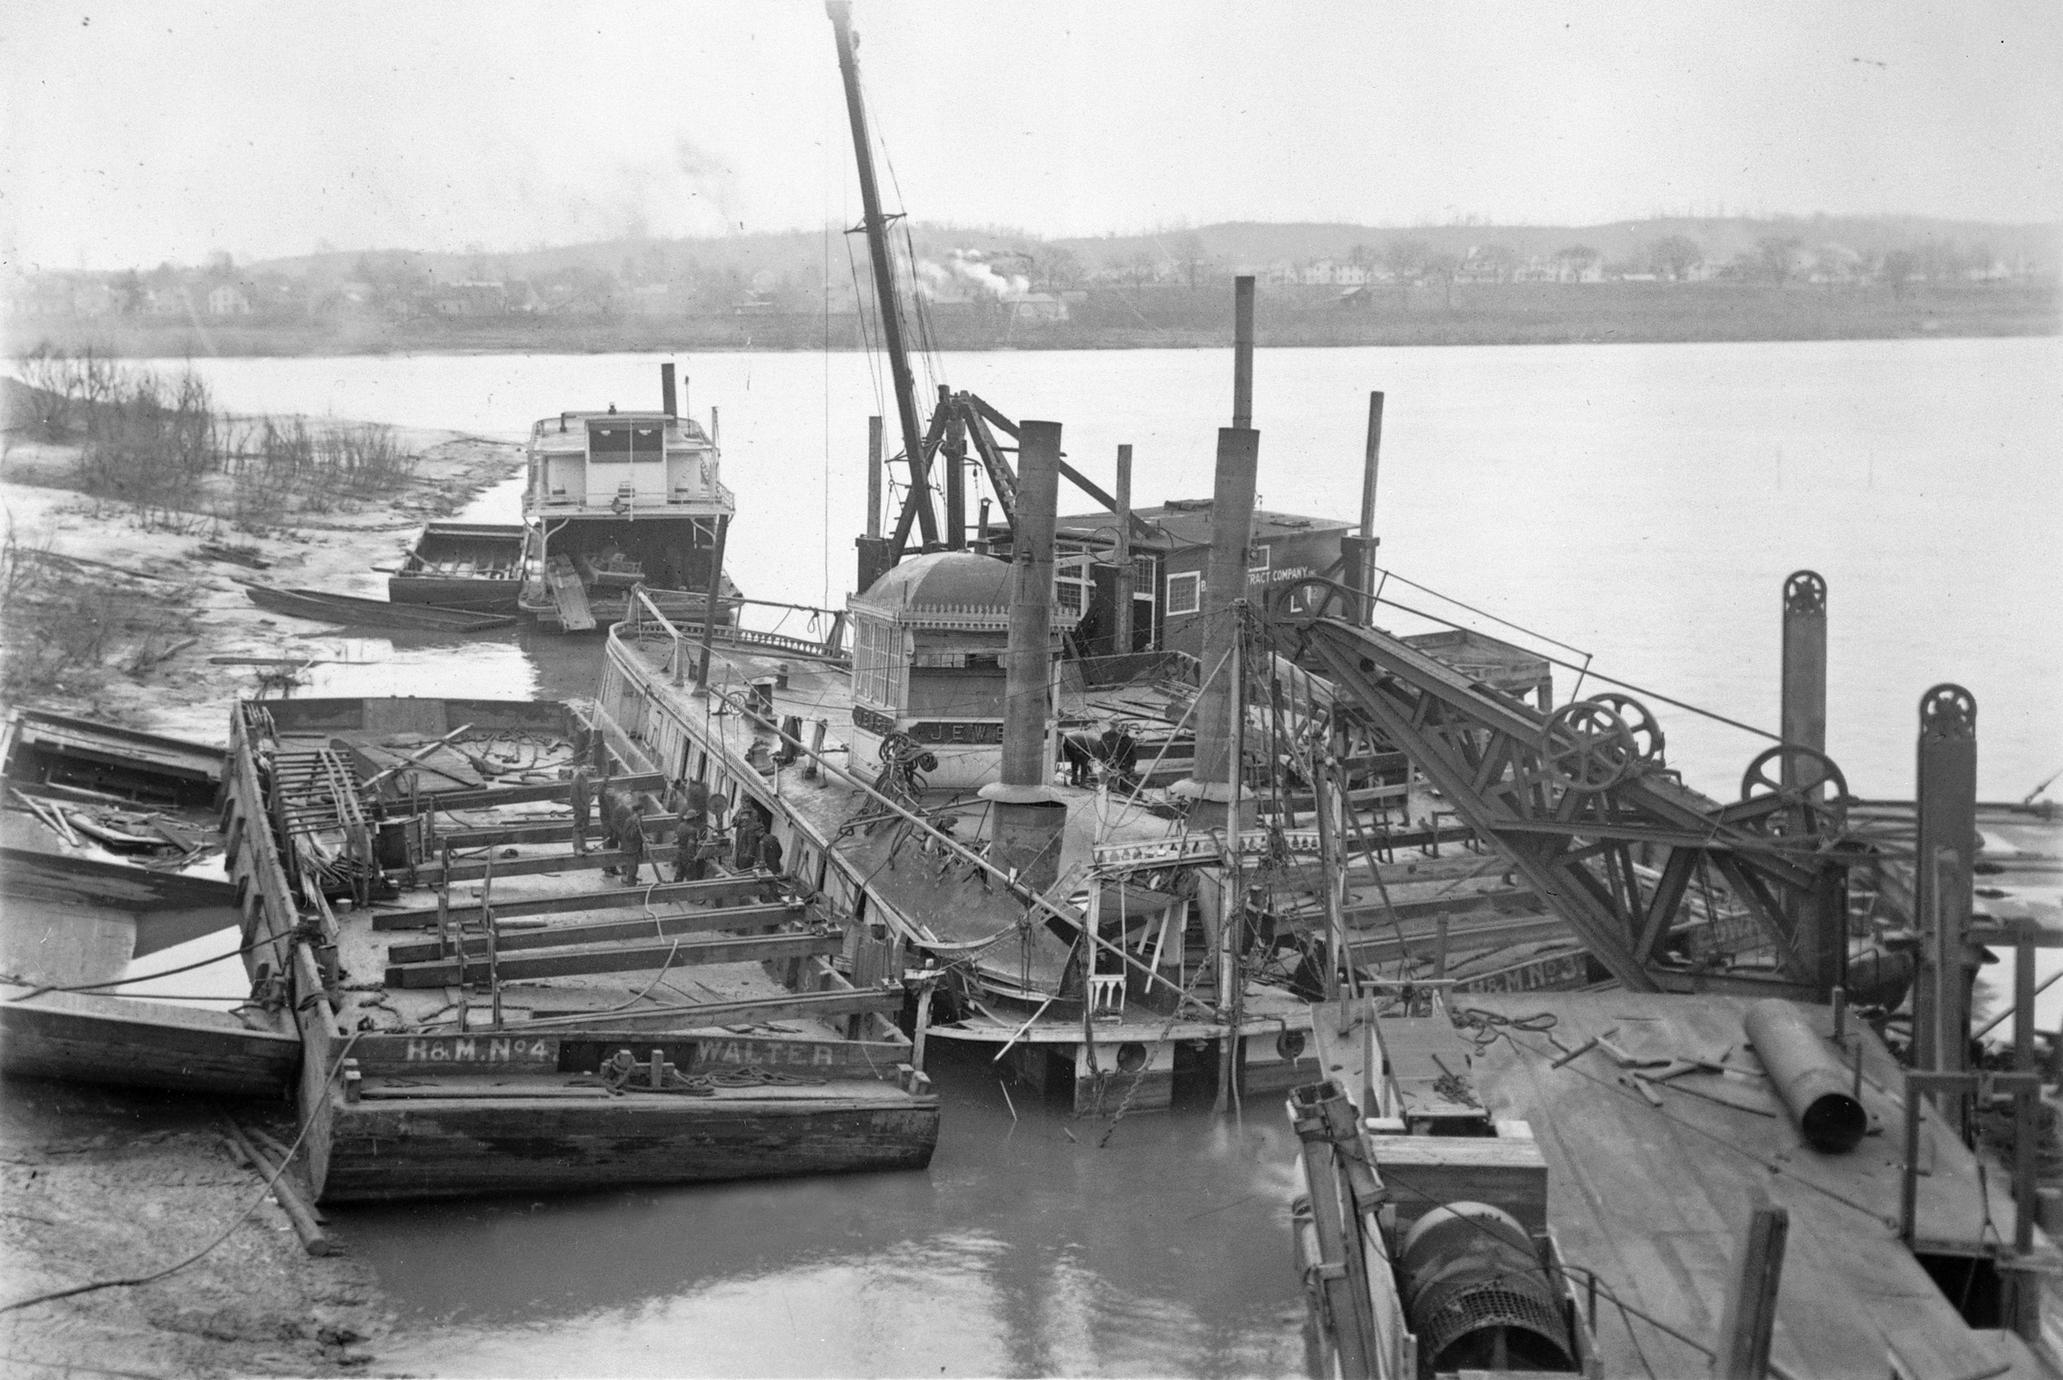 Jewel (Packet/Towboat, 1896?-1918)